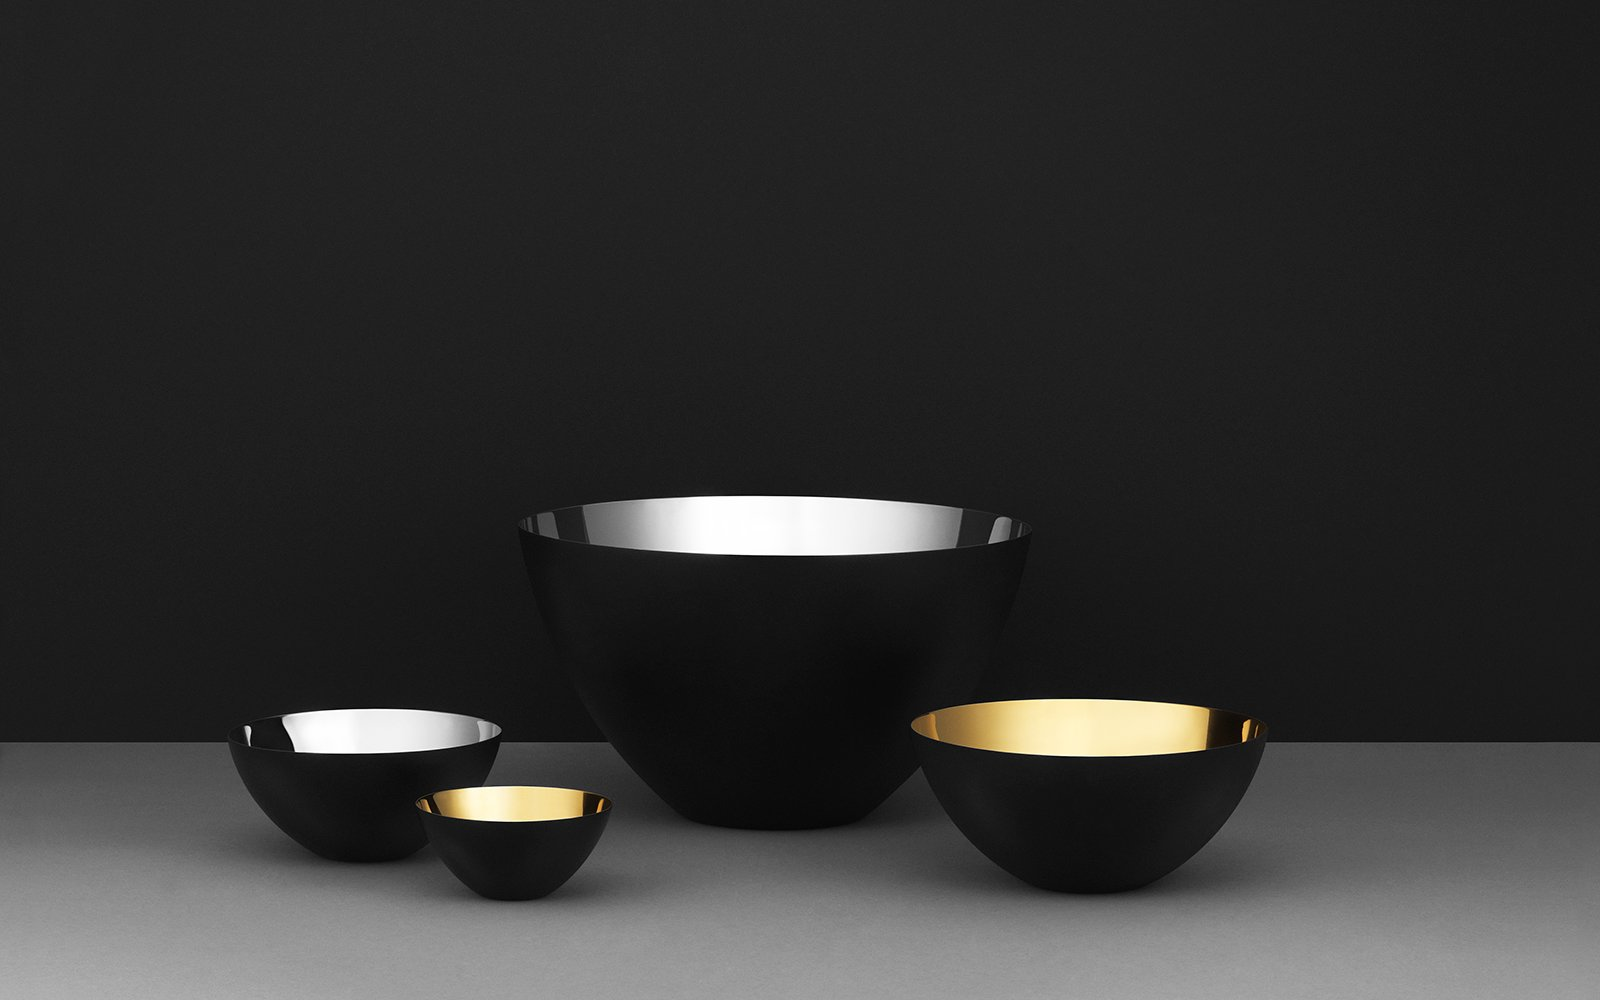 Photo 1 of 6 in The Story of an Extraordinary Bowl